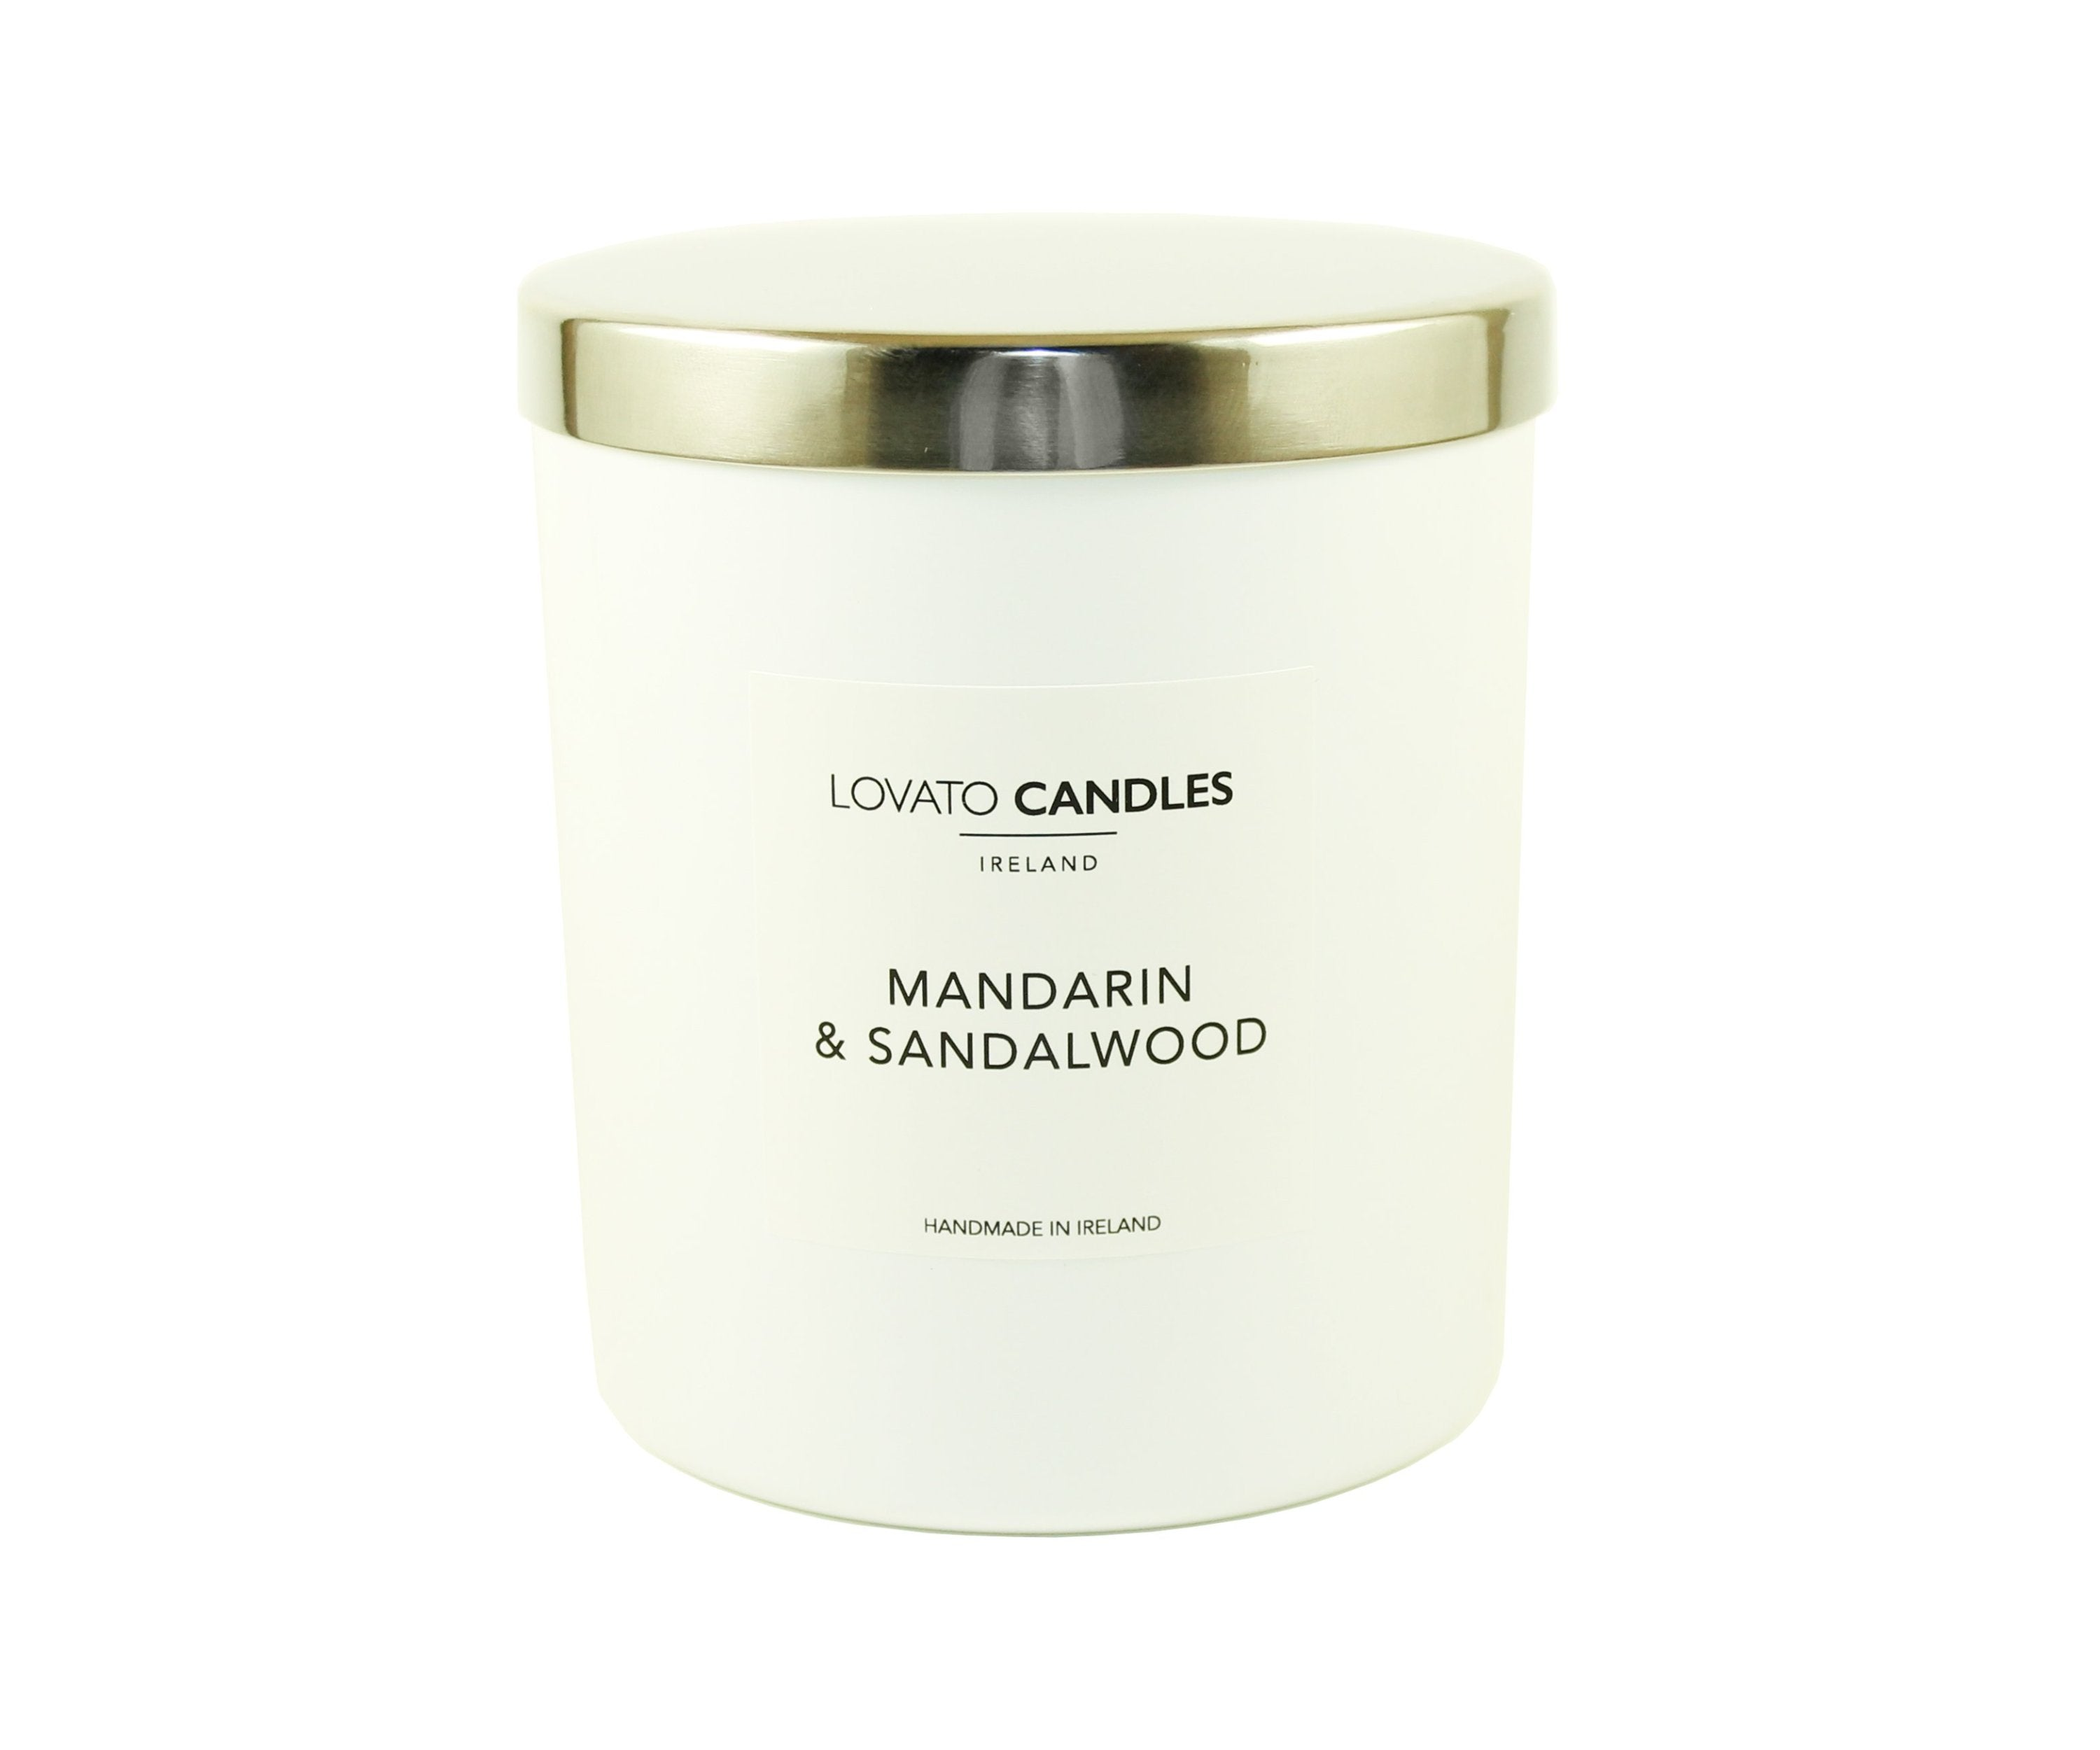 Luxury White Candle - Mandarin & Sandalwood - Lovato Candles